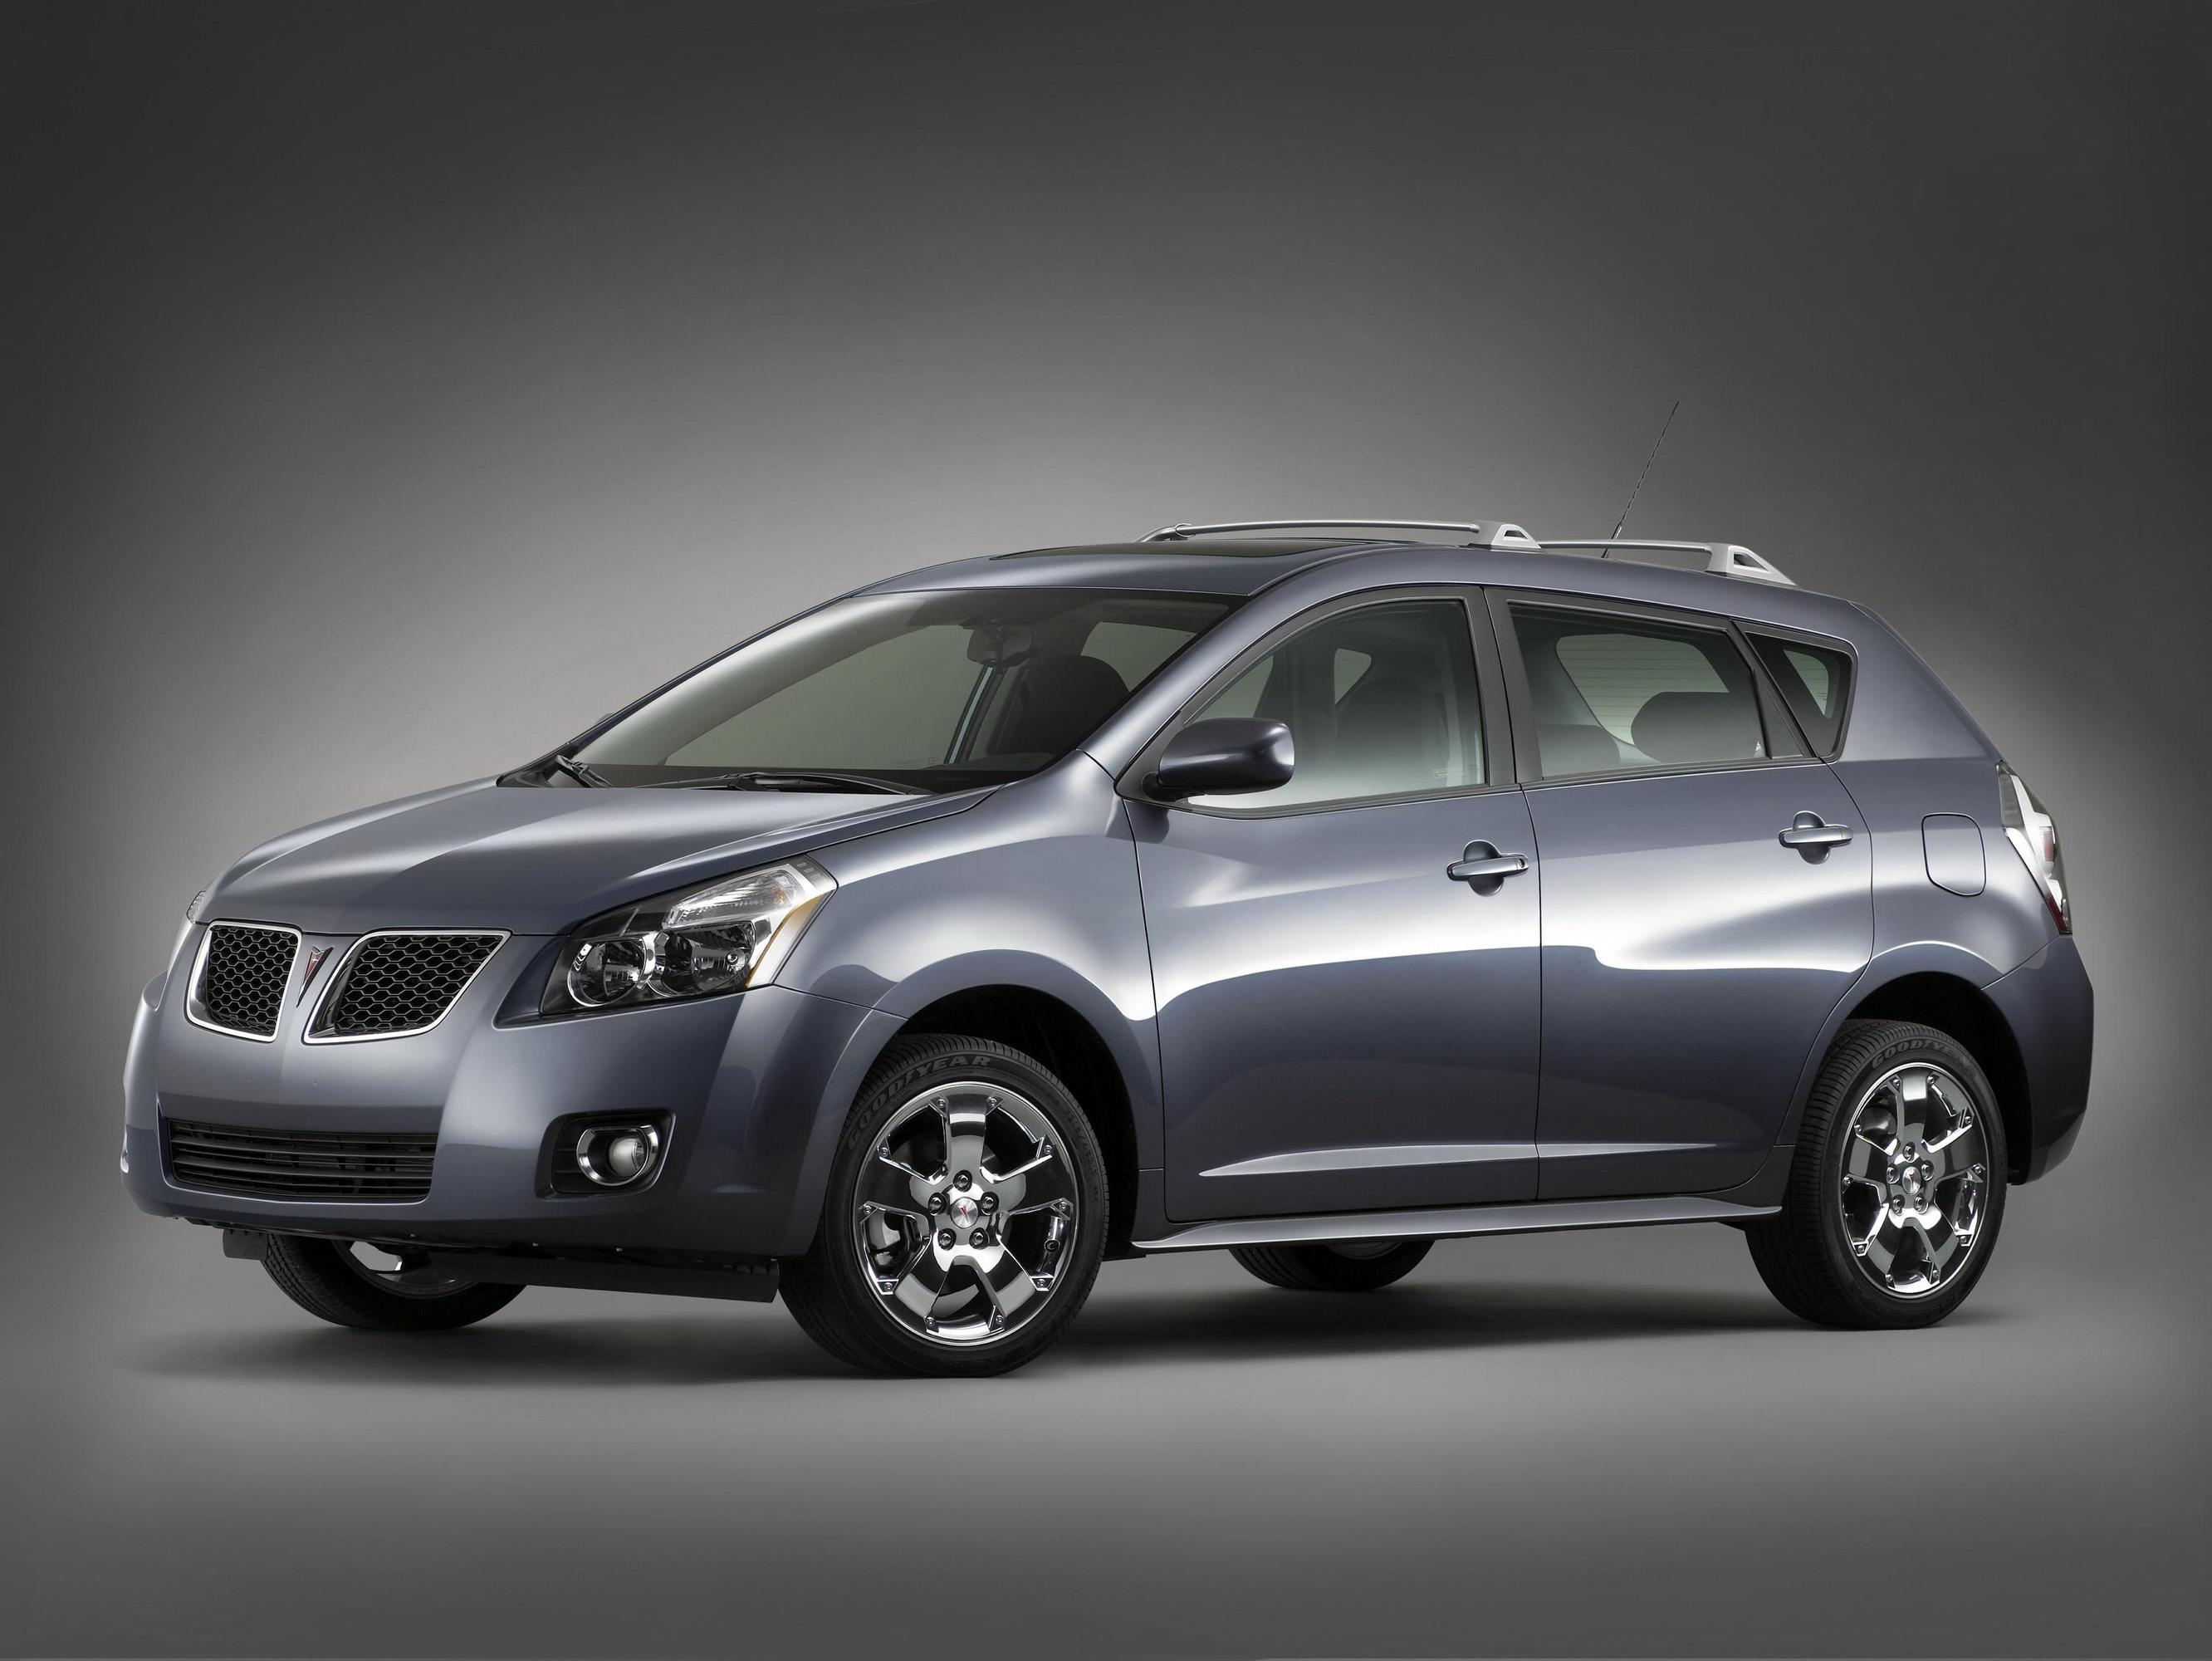 2009 pontiac vibe pricing announced news gallery top speed. Black Bedroom Furniture Sets. Home Design Ideas